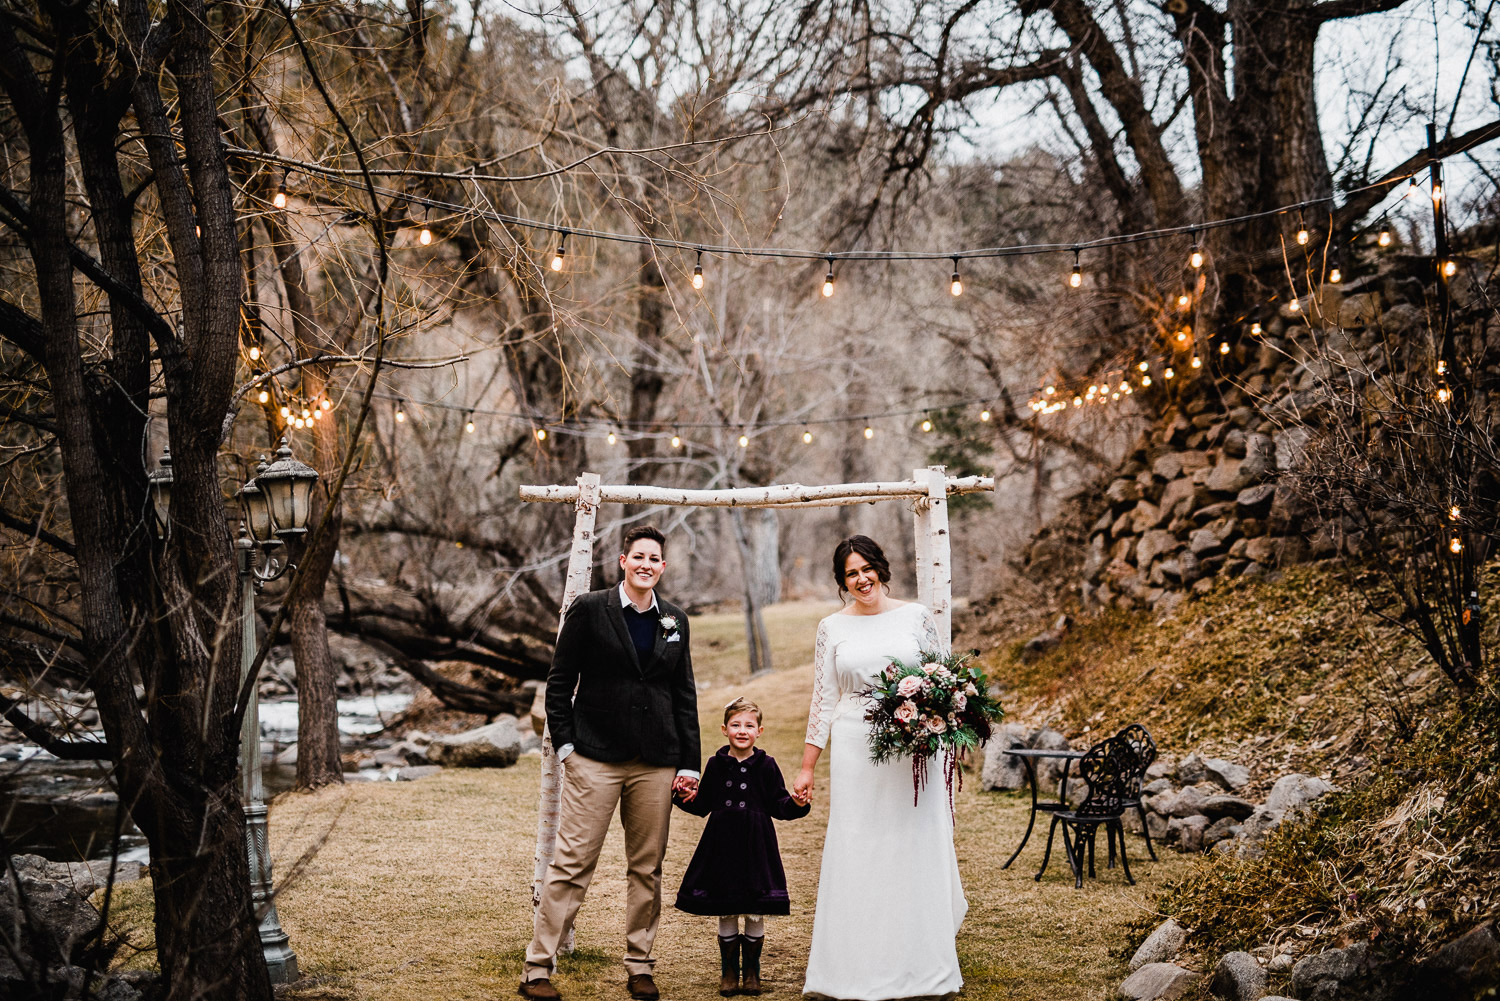 wedgewood boulder creek wedding photographer